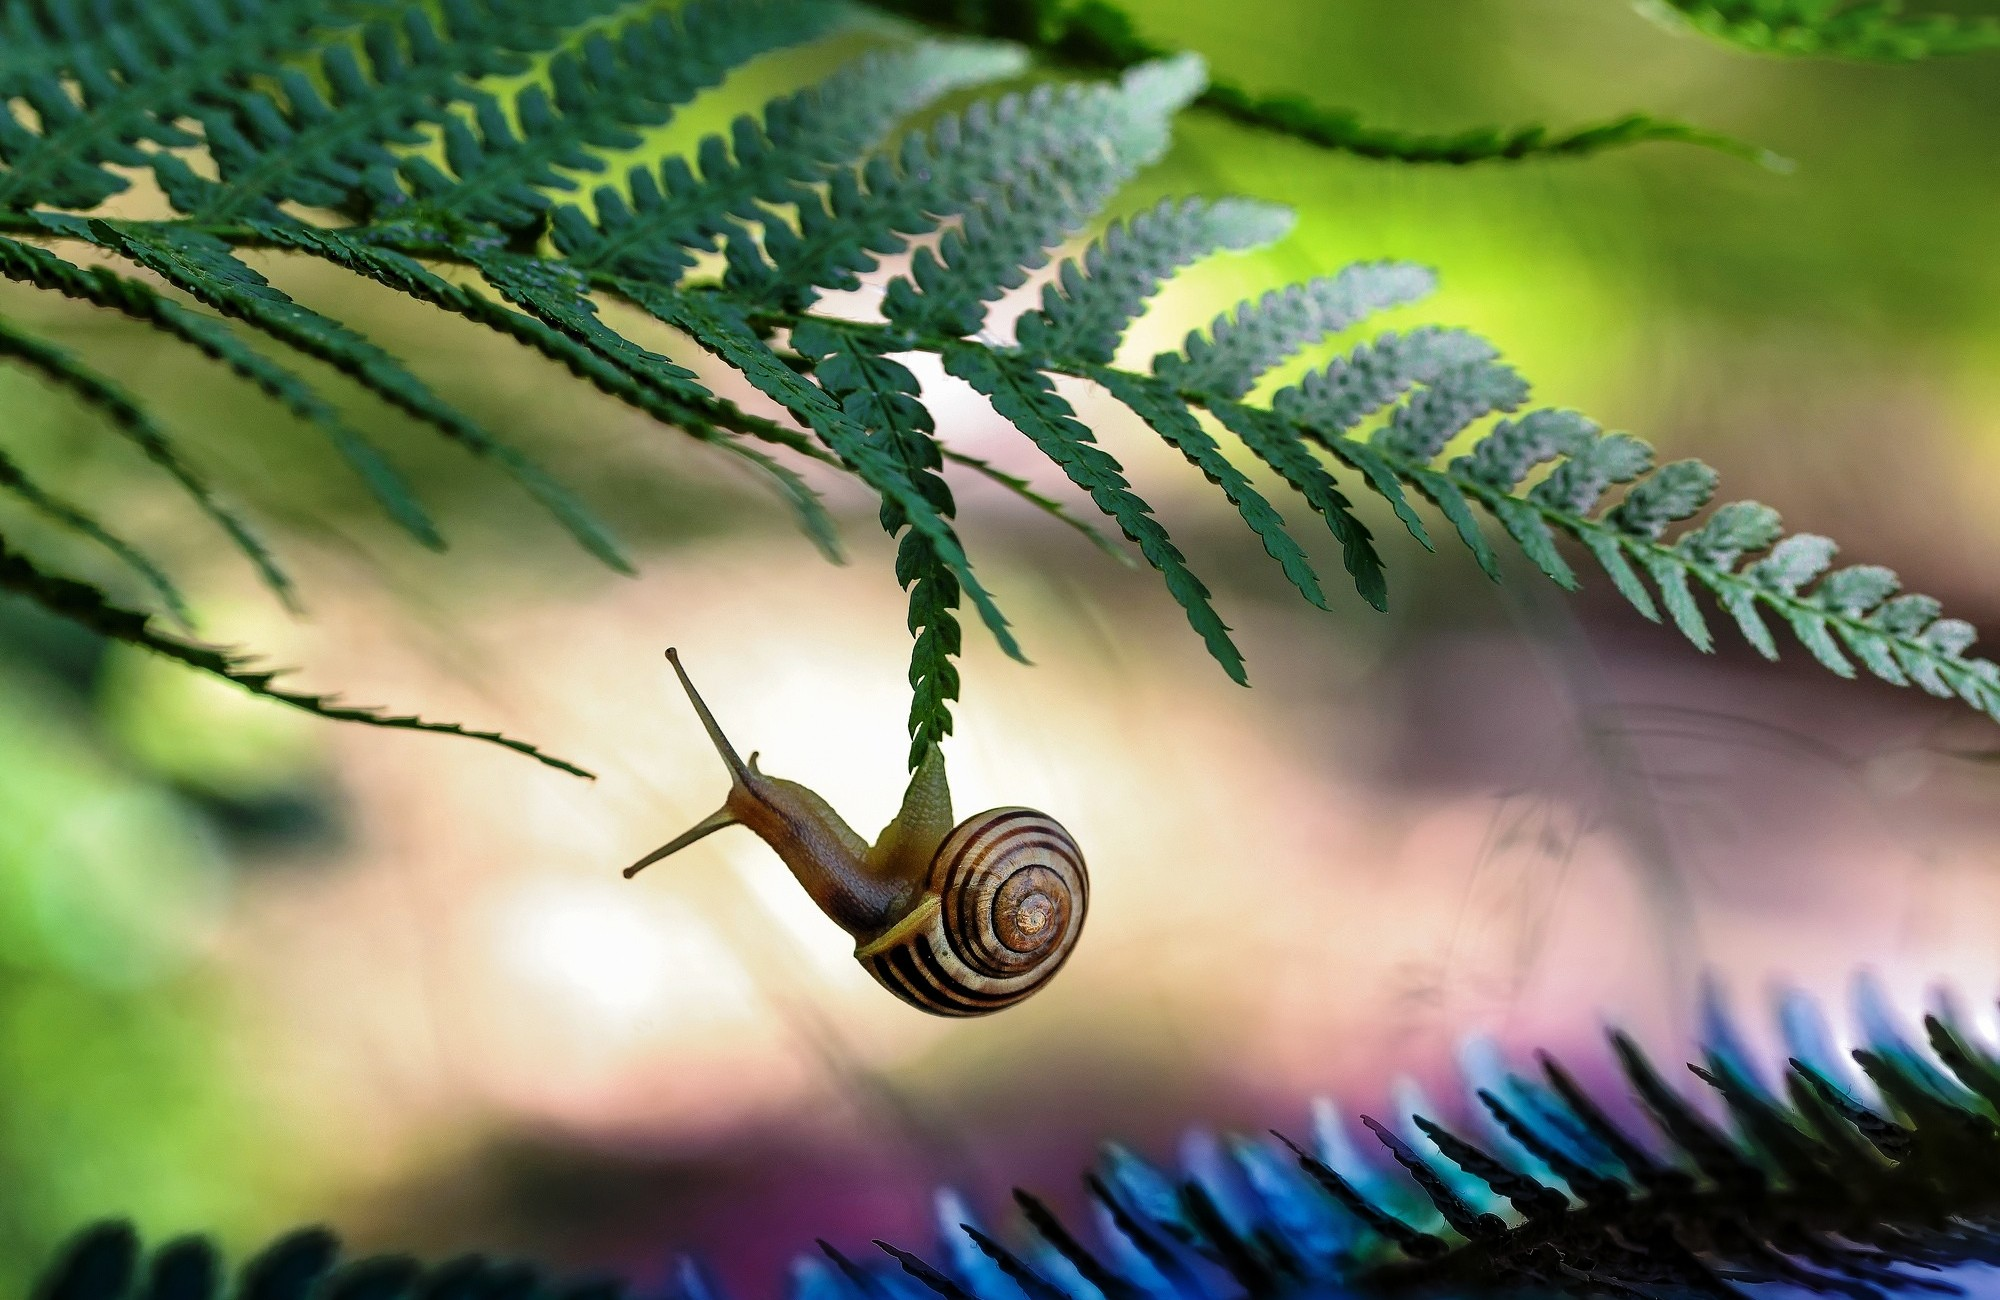 Cute Wallpapers For March 36 Excellent Hd Snail Wallpapers